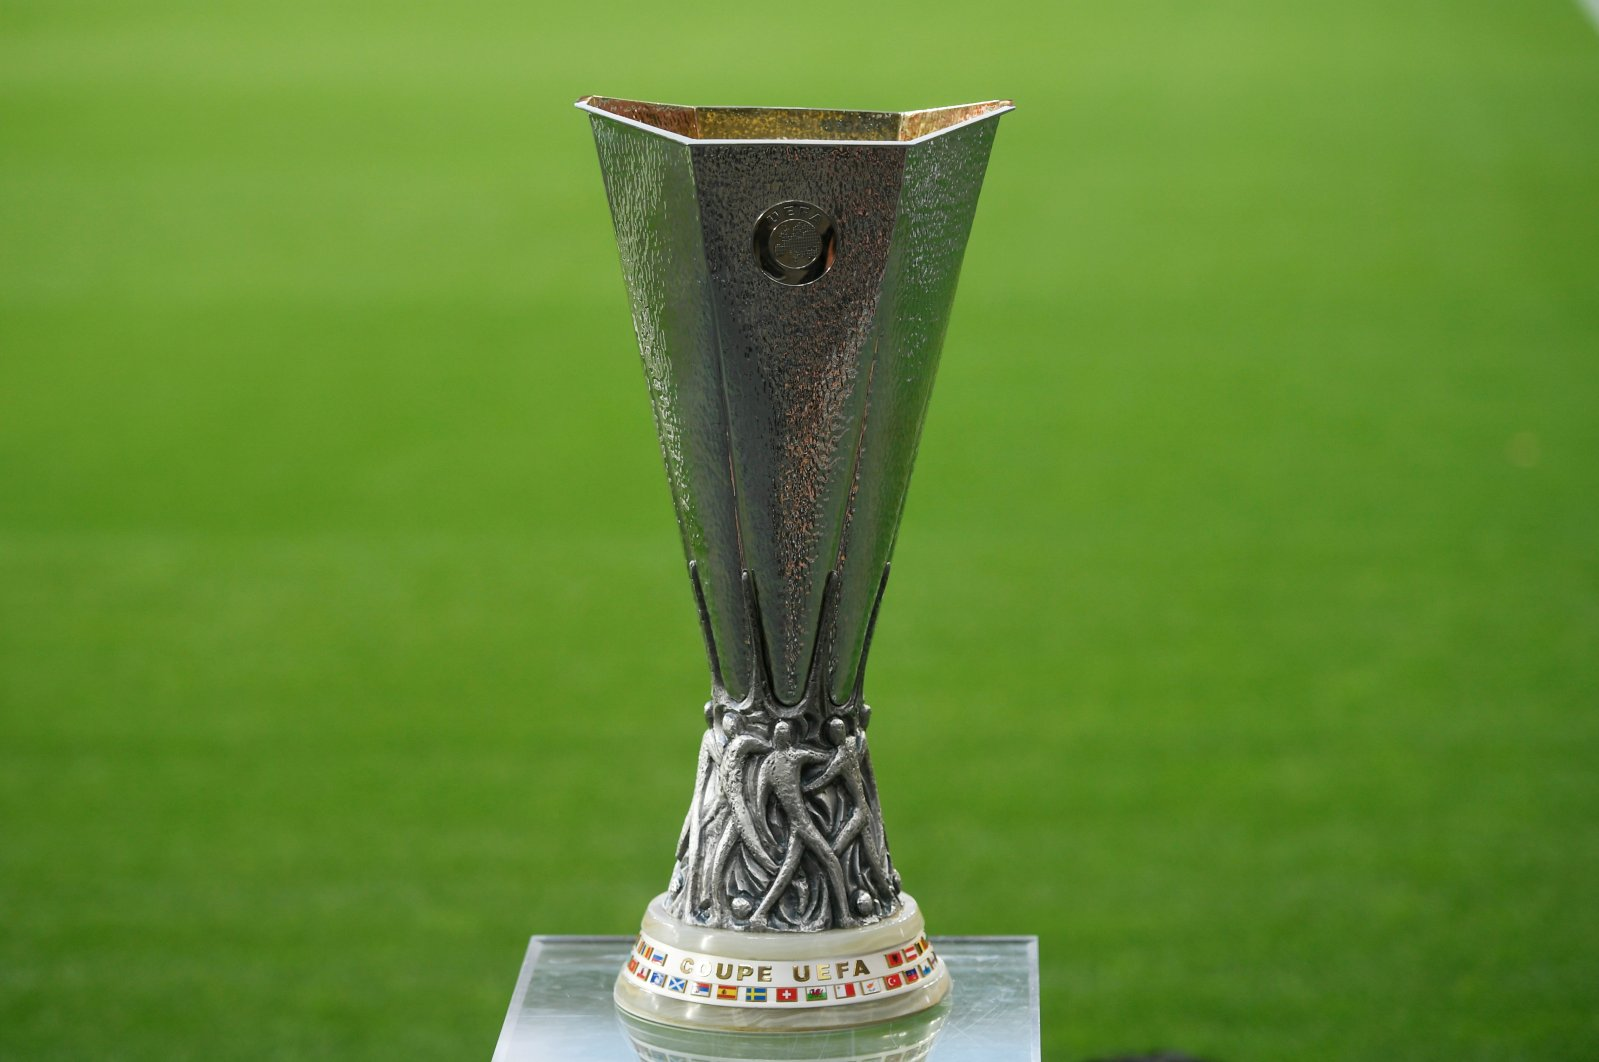 The Europa League trophy before last year's final between Sevilla and Inter Milan, Cologne, Germany, Aug. 21, 2020. (Reuters Photo)